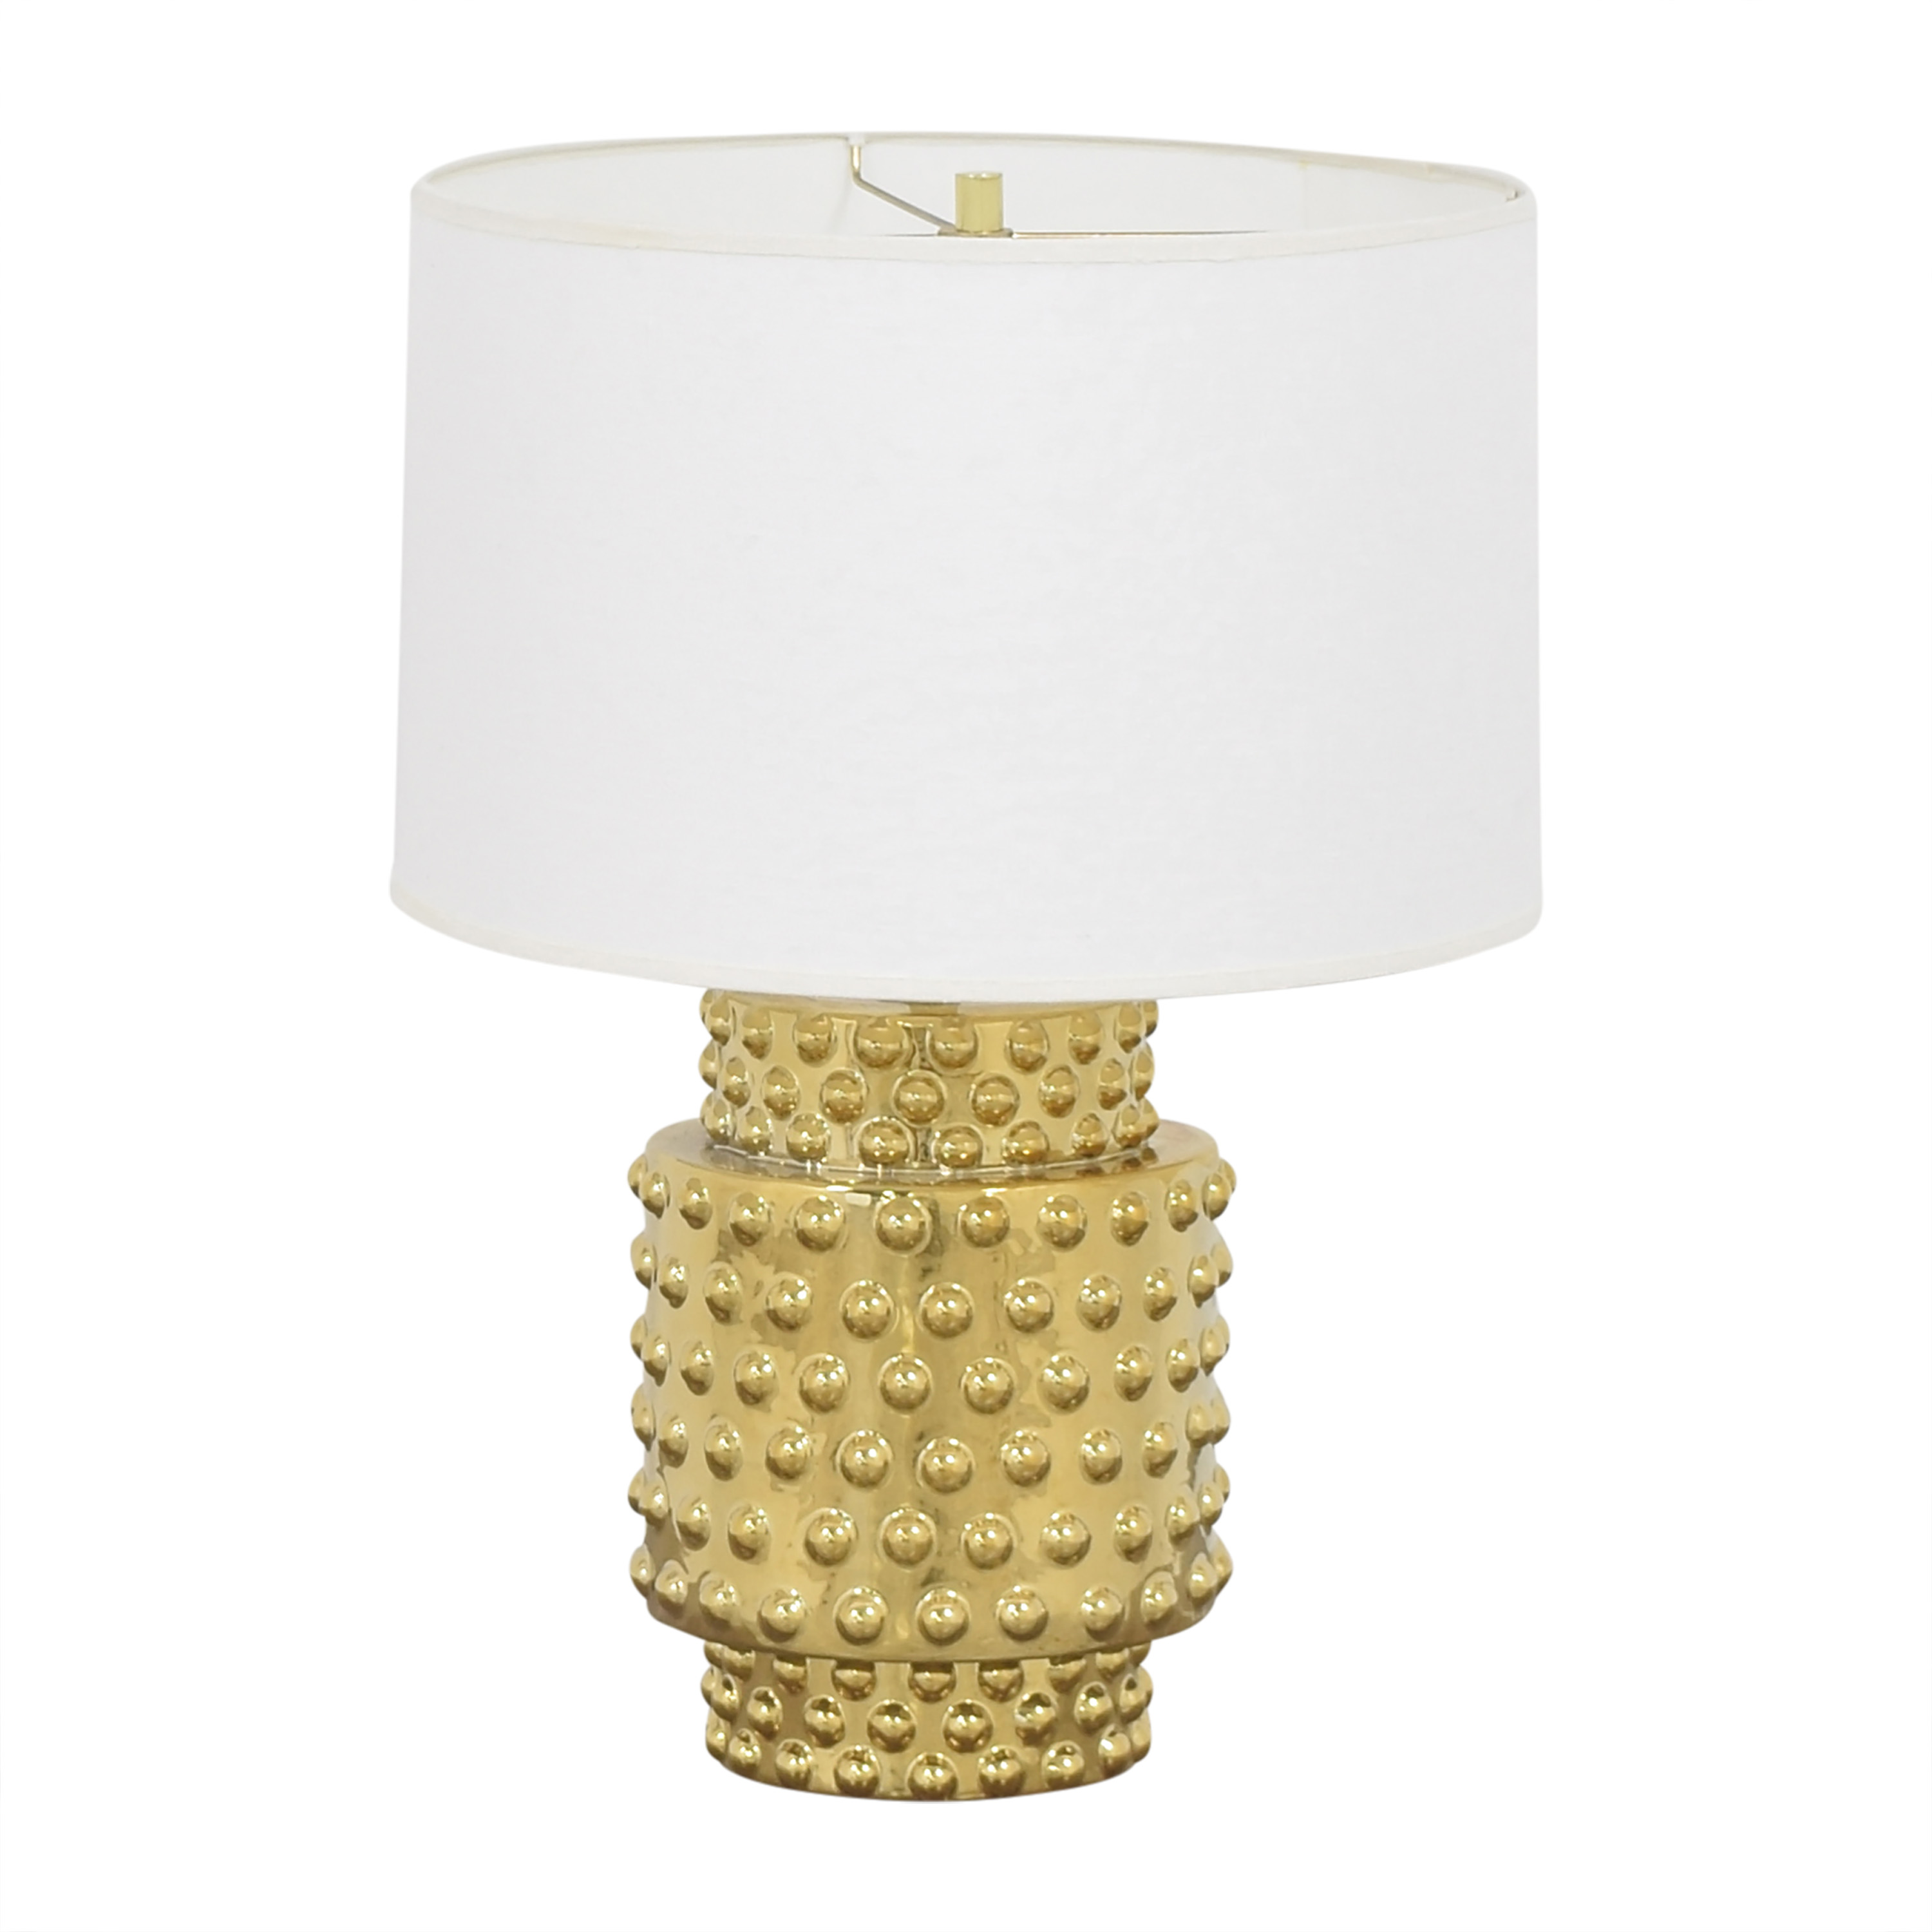 Serena & Lily Serena & Lily Tinsley Table Lamp price